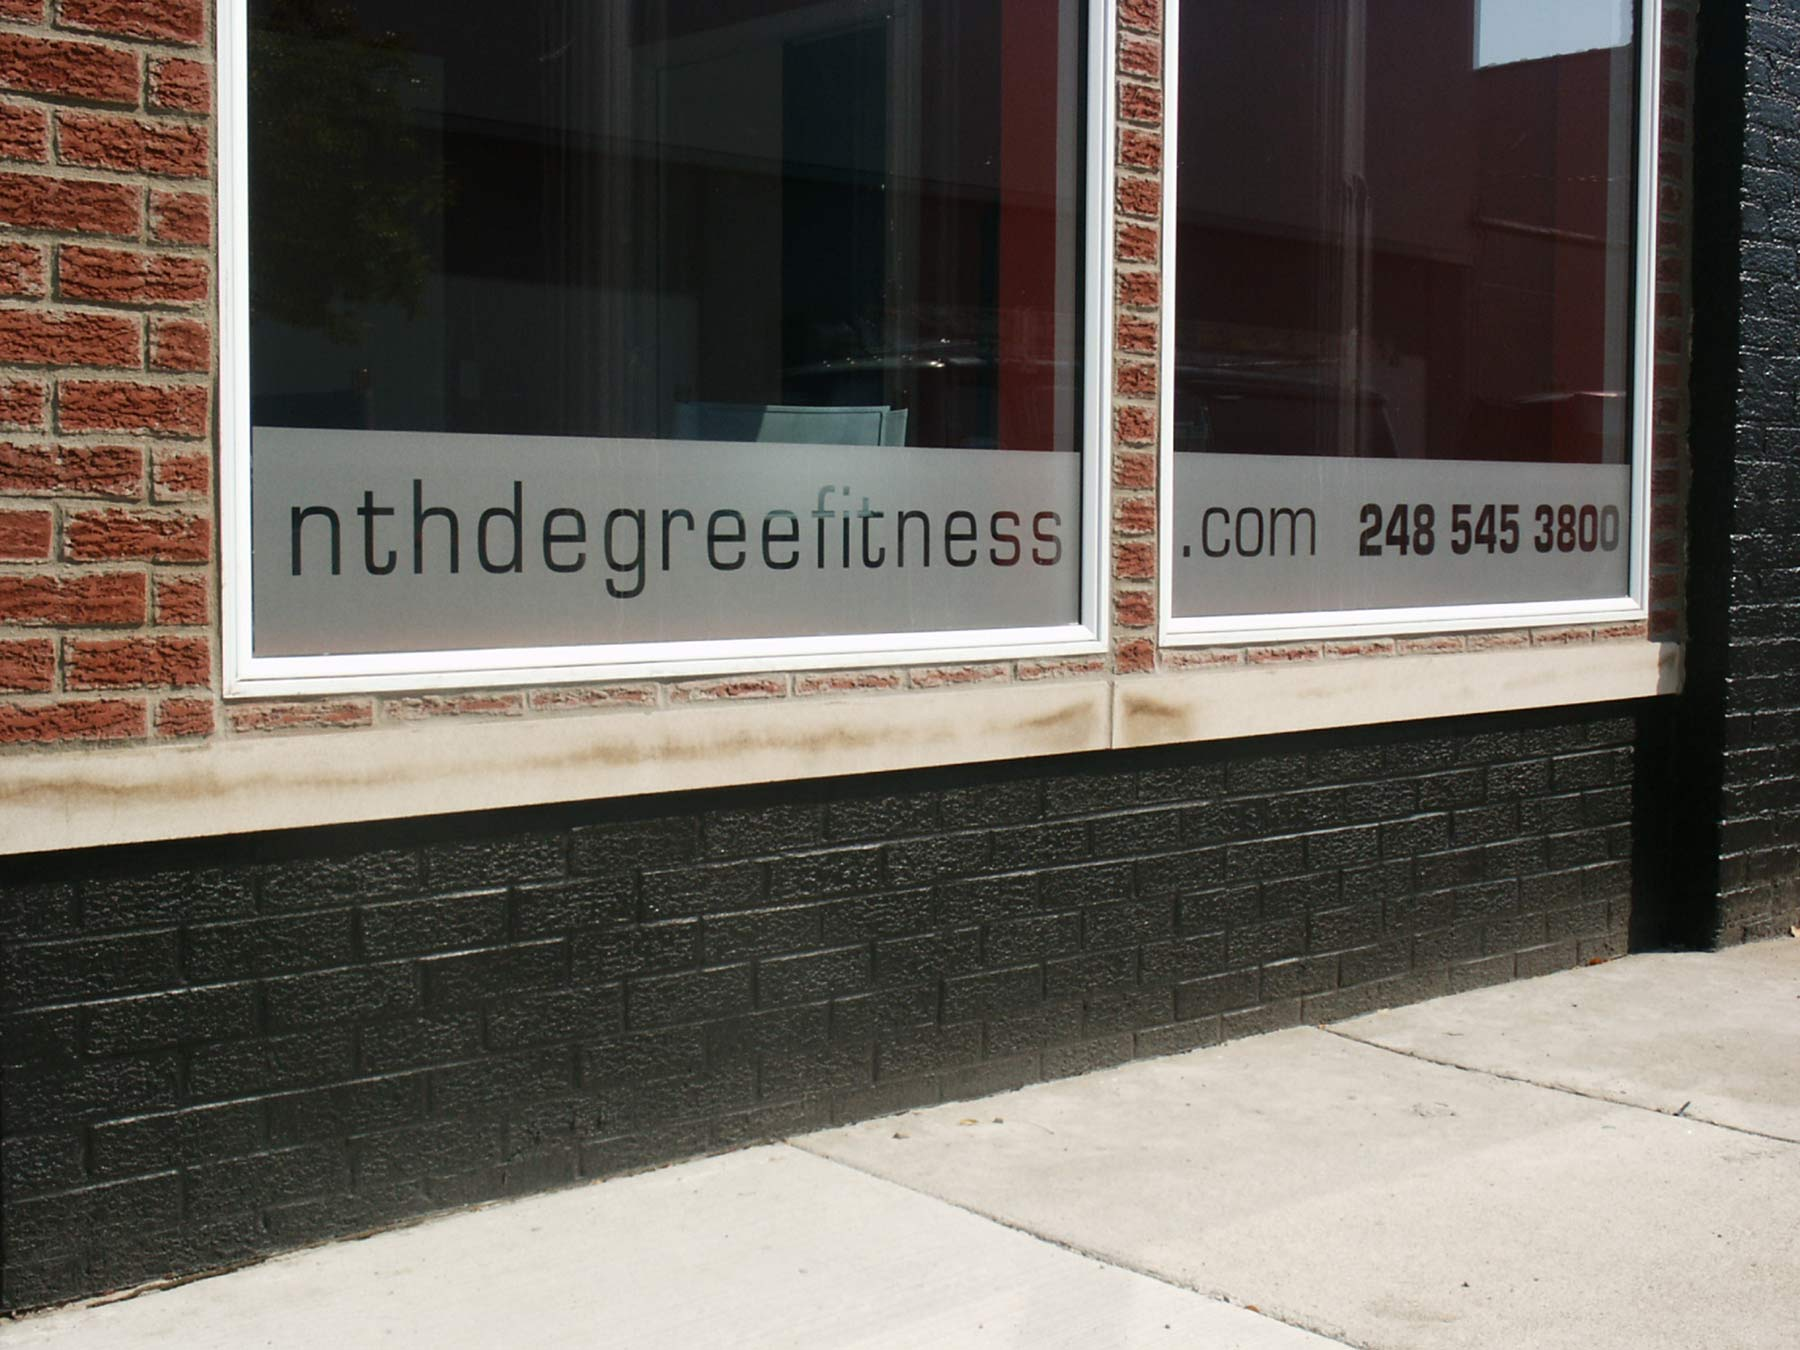 exterior sign for nth degree fitness in ferndale